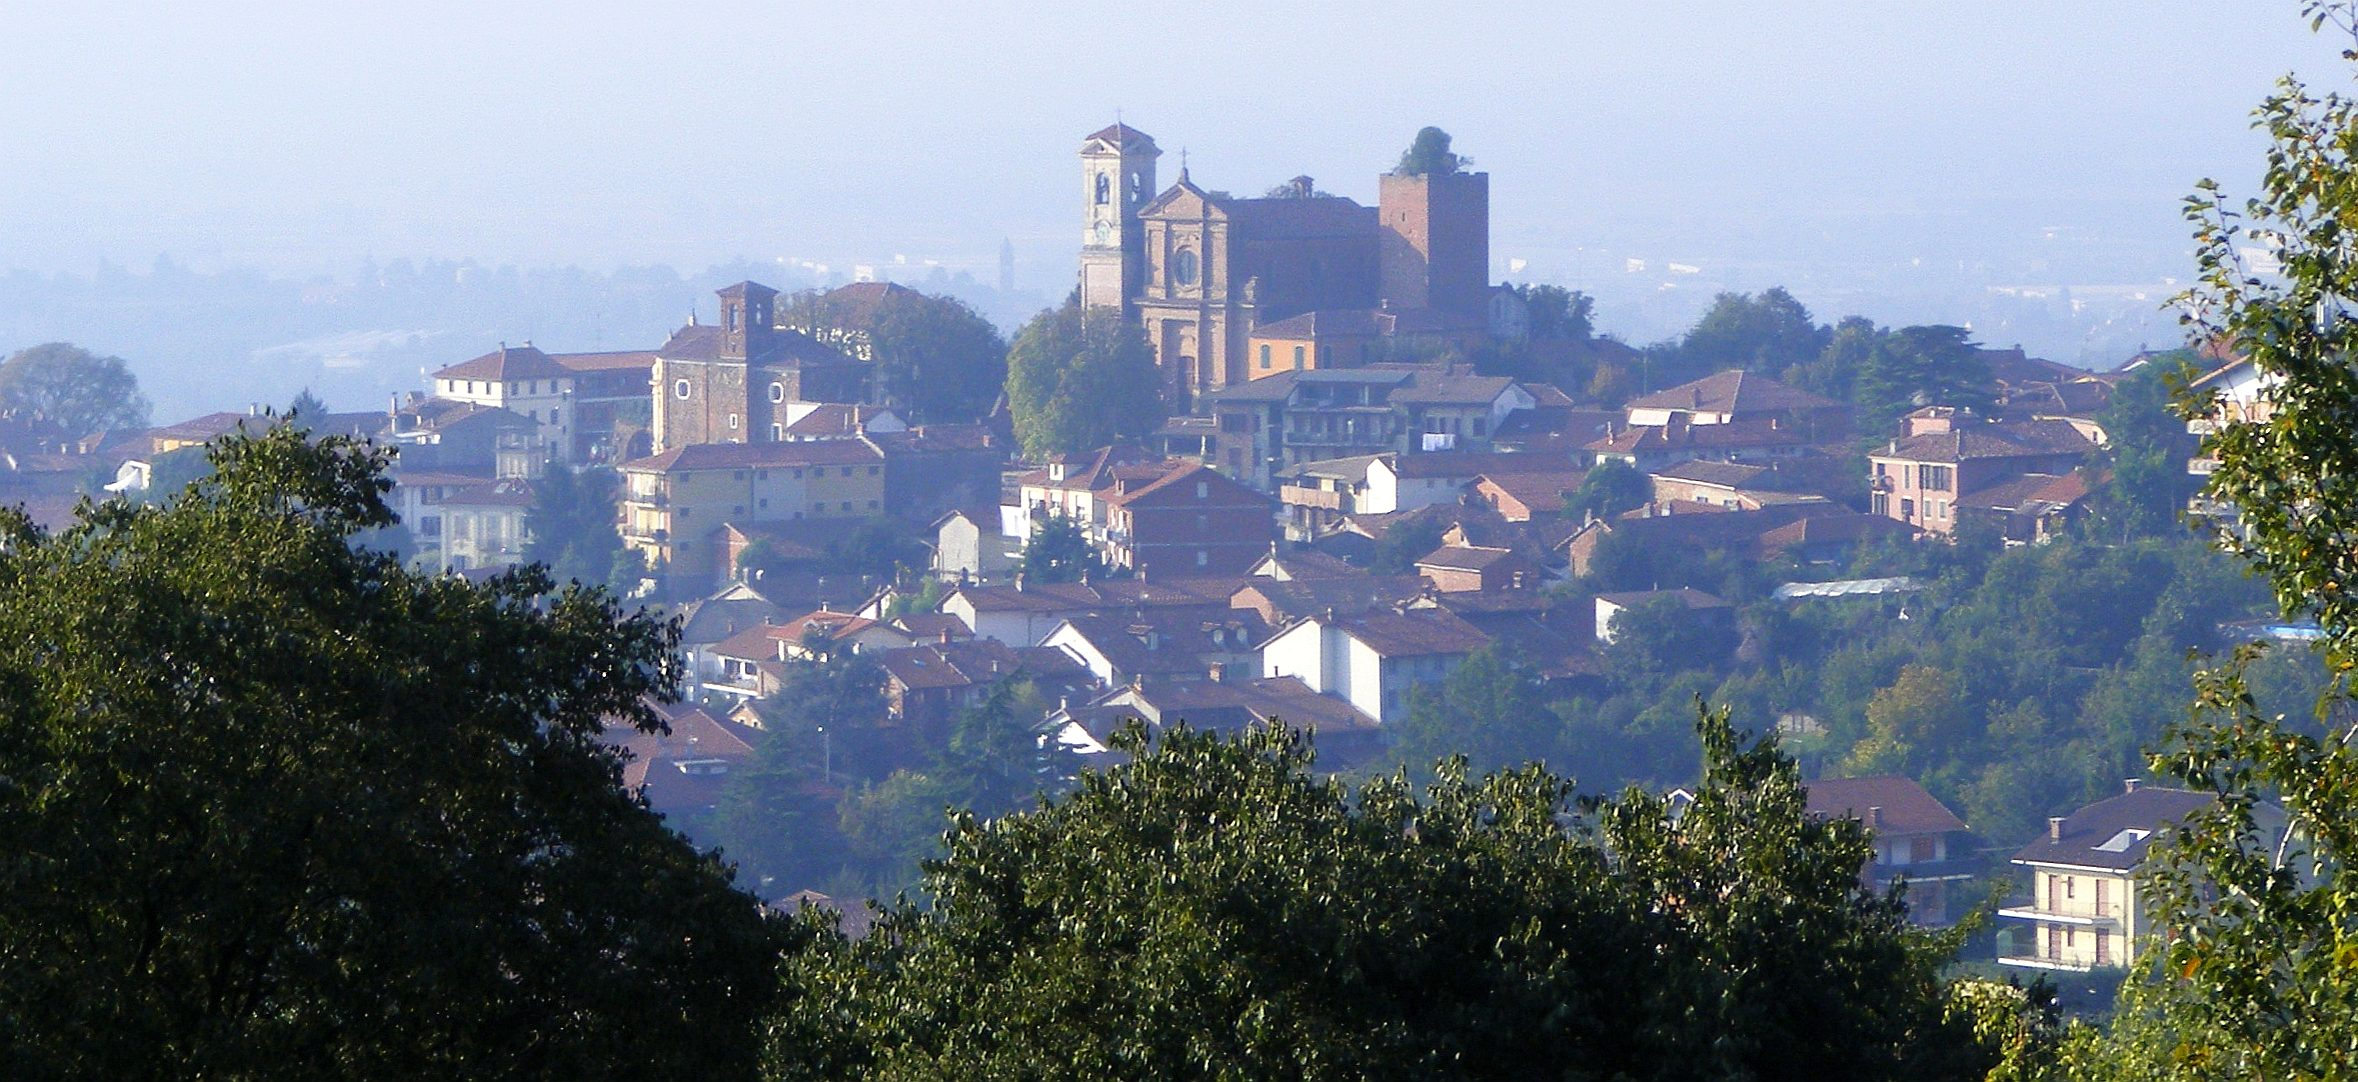 Pecetto Torinese Italy  city images : Pecetto torinese panorama Wikimedia Commons